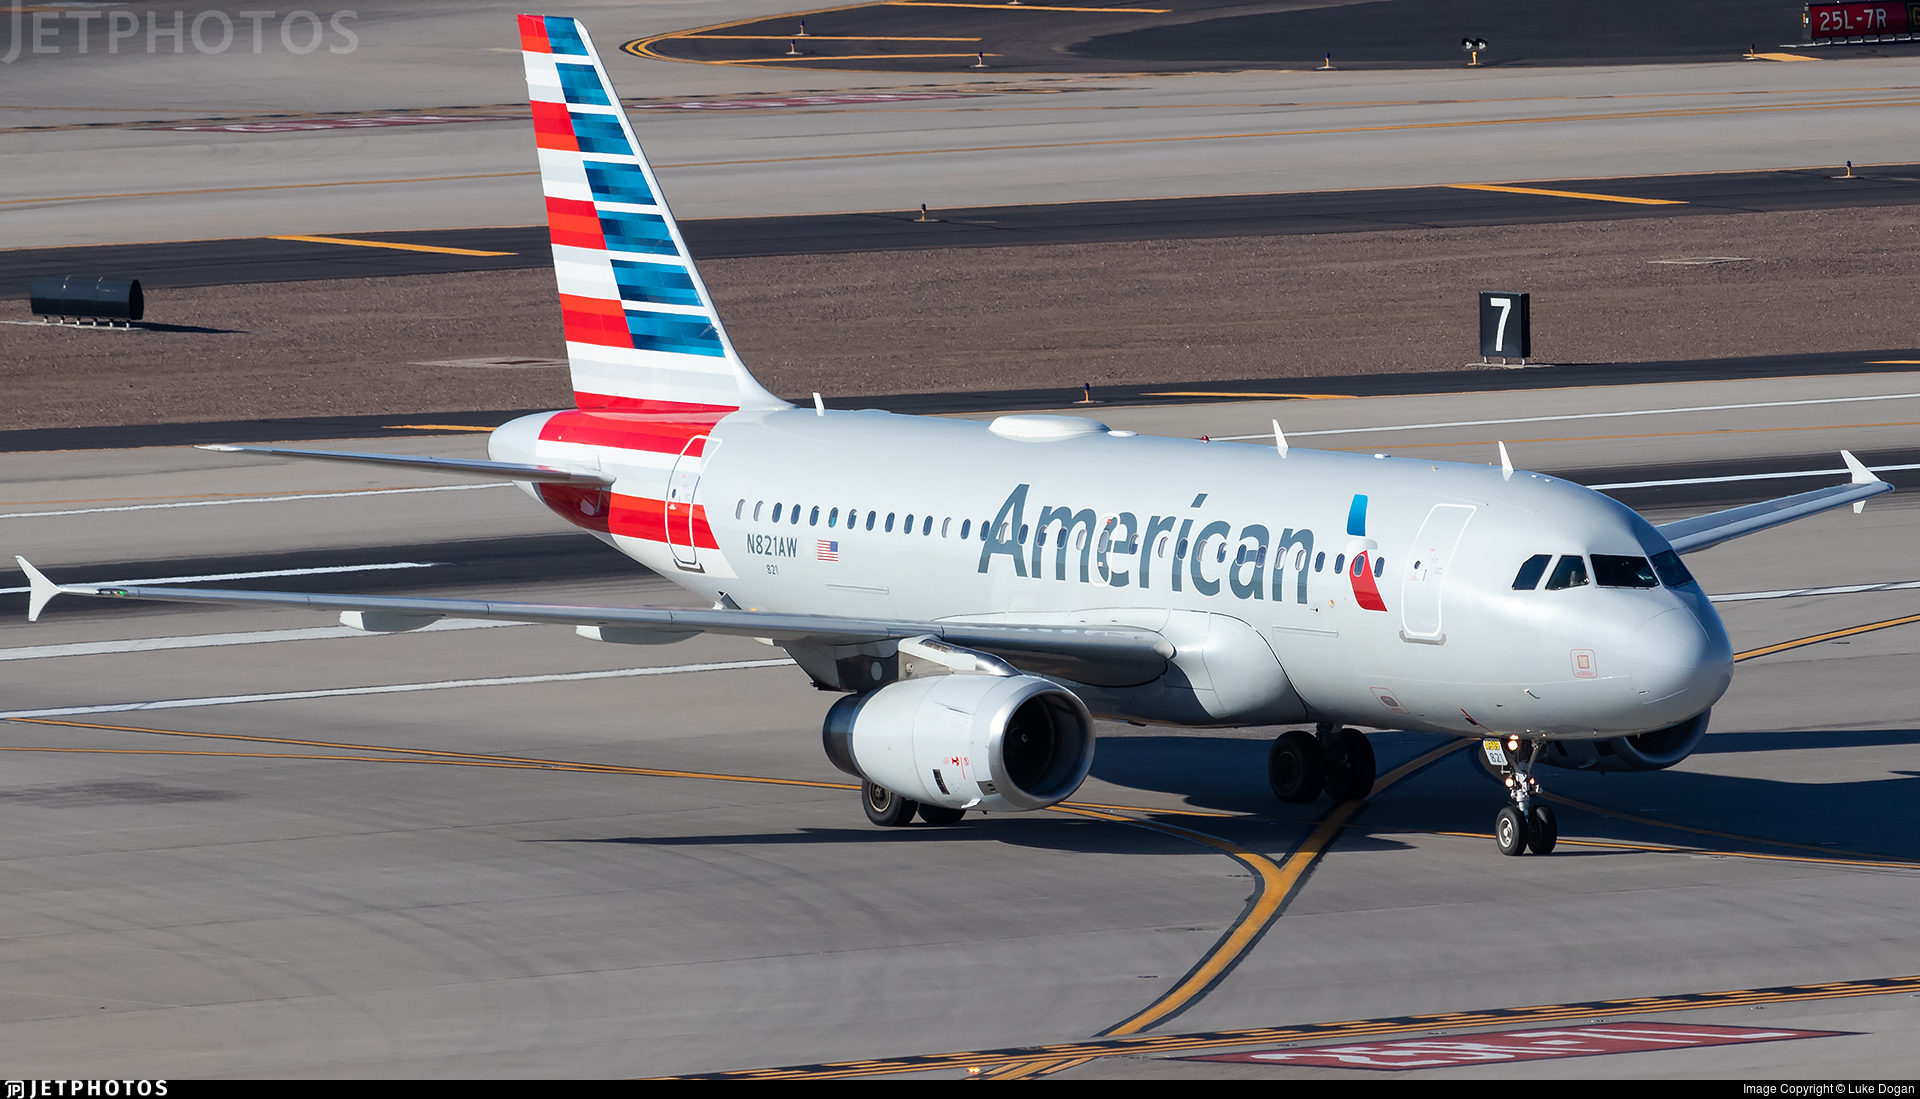 N831aw Airbus A319 132 American Airlines Luke Dogan